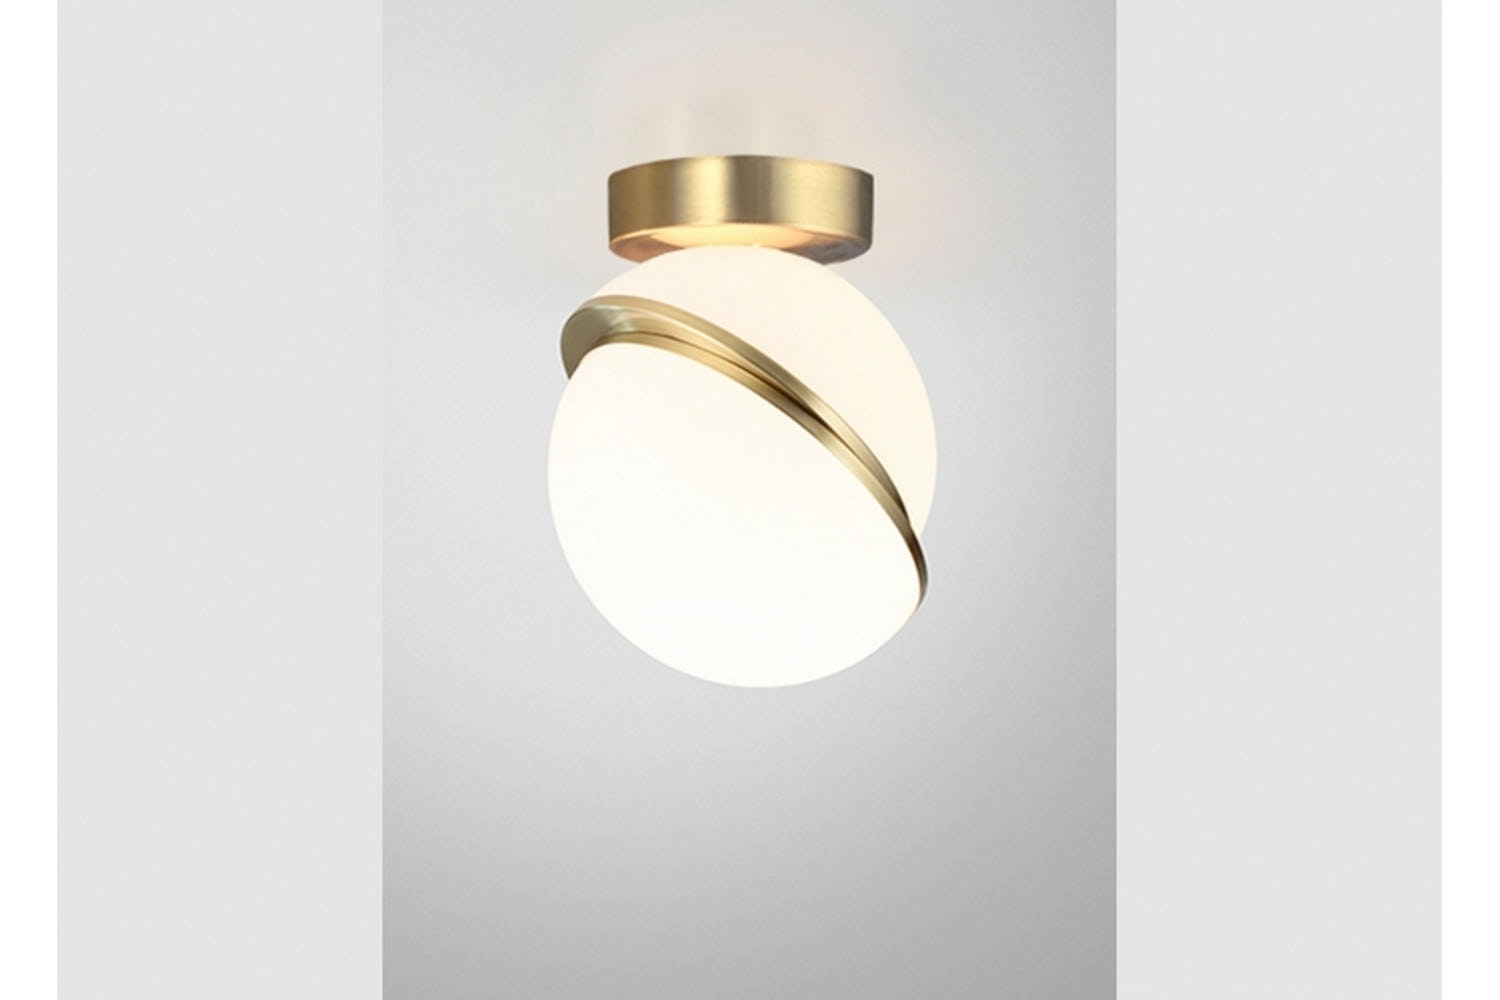 Mini Crescent Ceiling Lamp by Lee Broom